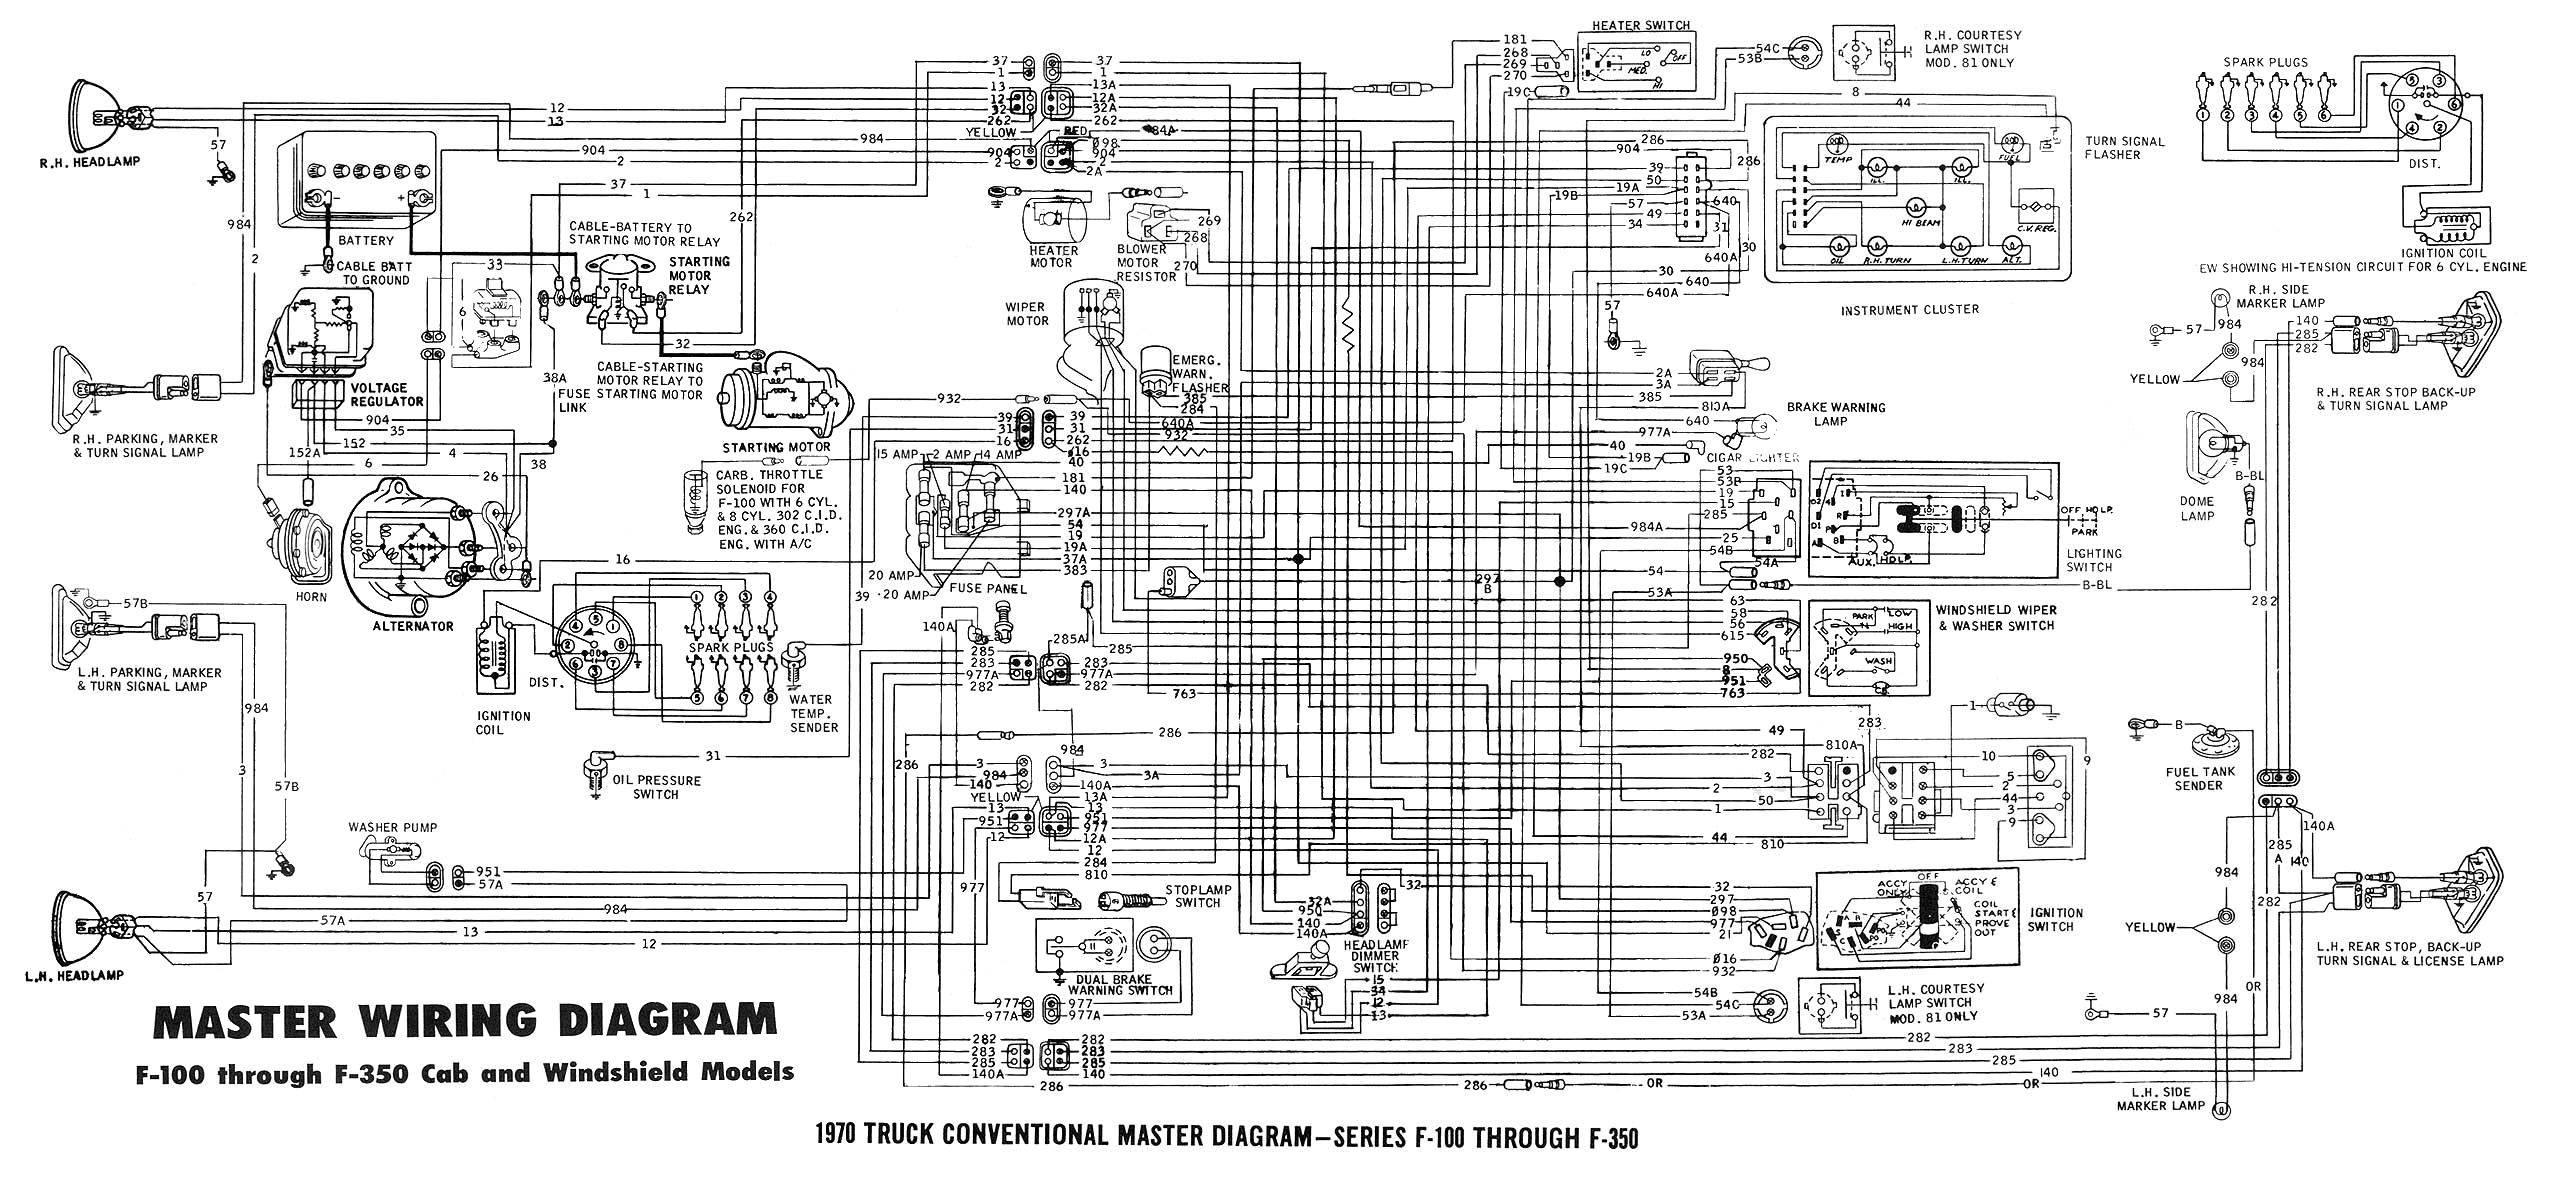 wiring diagram for a 78 ford bronco the wiring diagram ford truck wiring diagrams ford wiring diagrams for car or wiring diagram